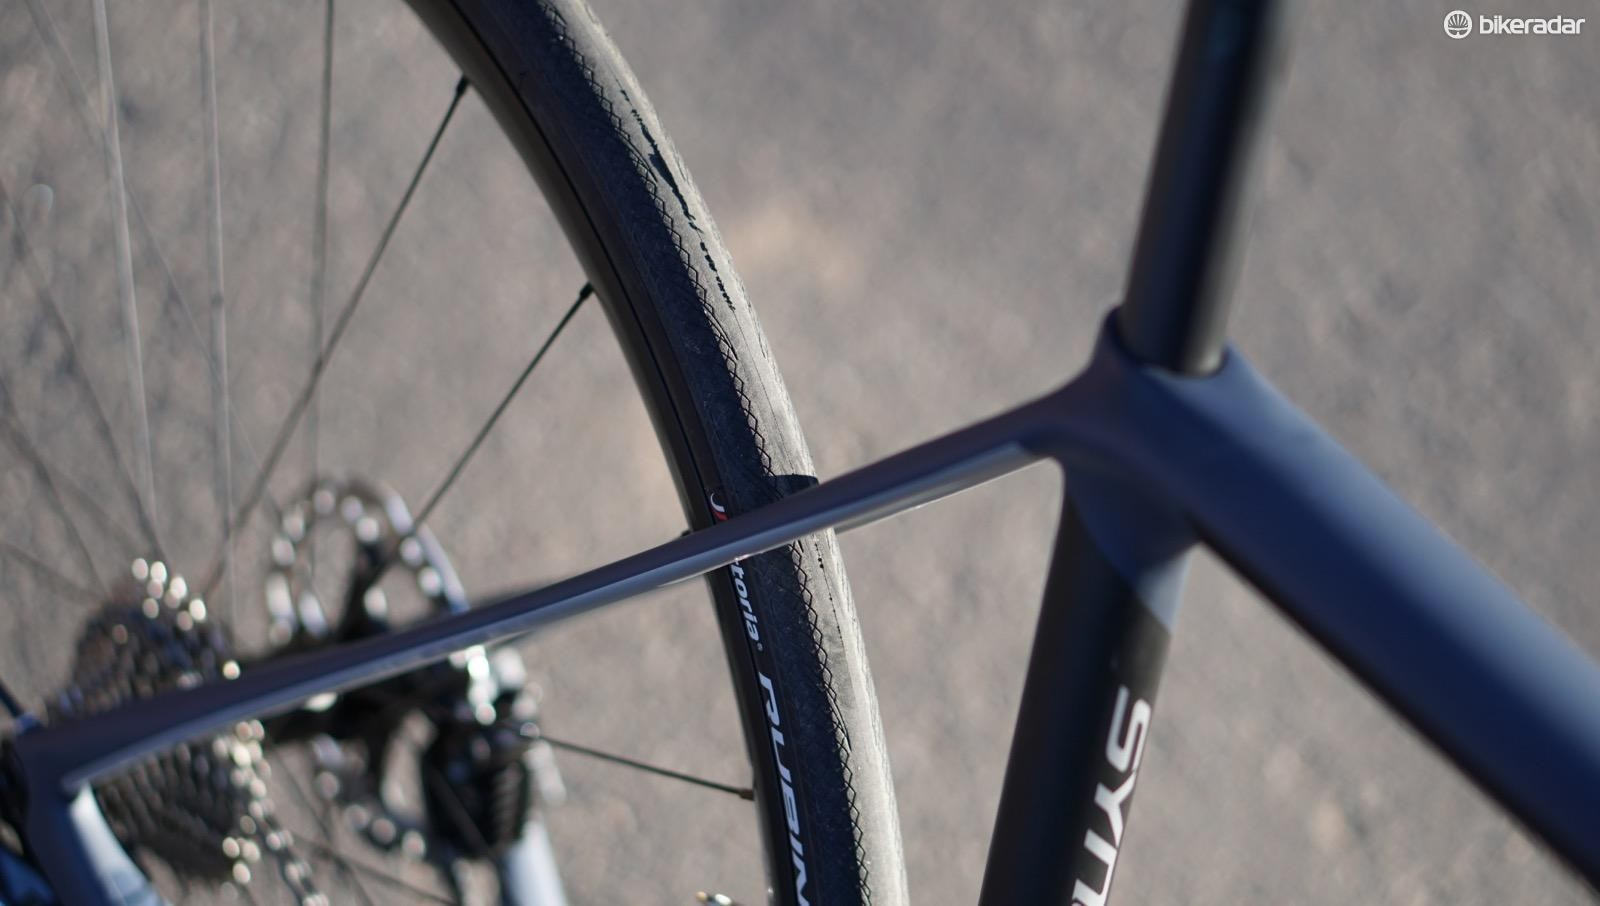 Cannondale doesn't have a monopoly on skinny seatstays, but that doesn't make them any less effective at soaking up bumps